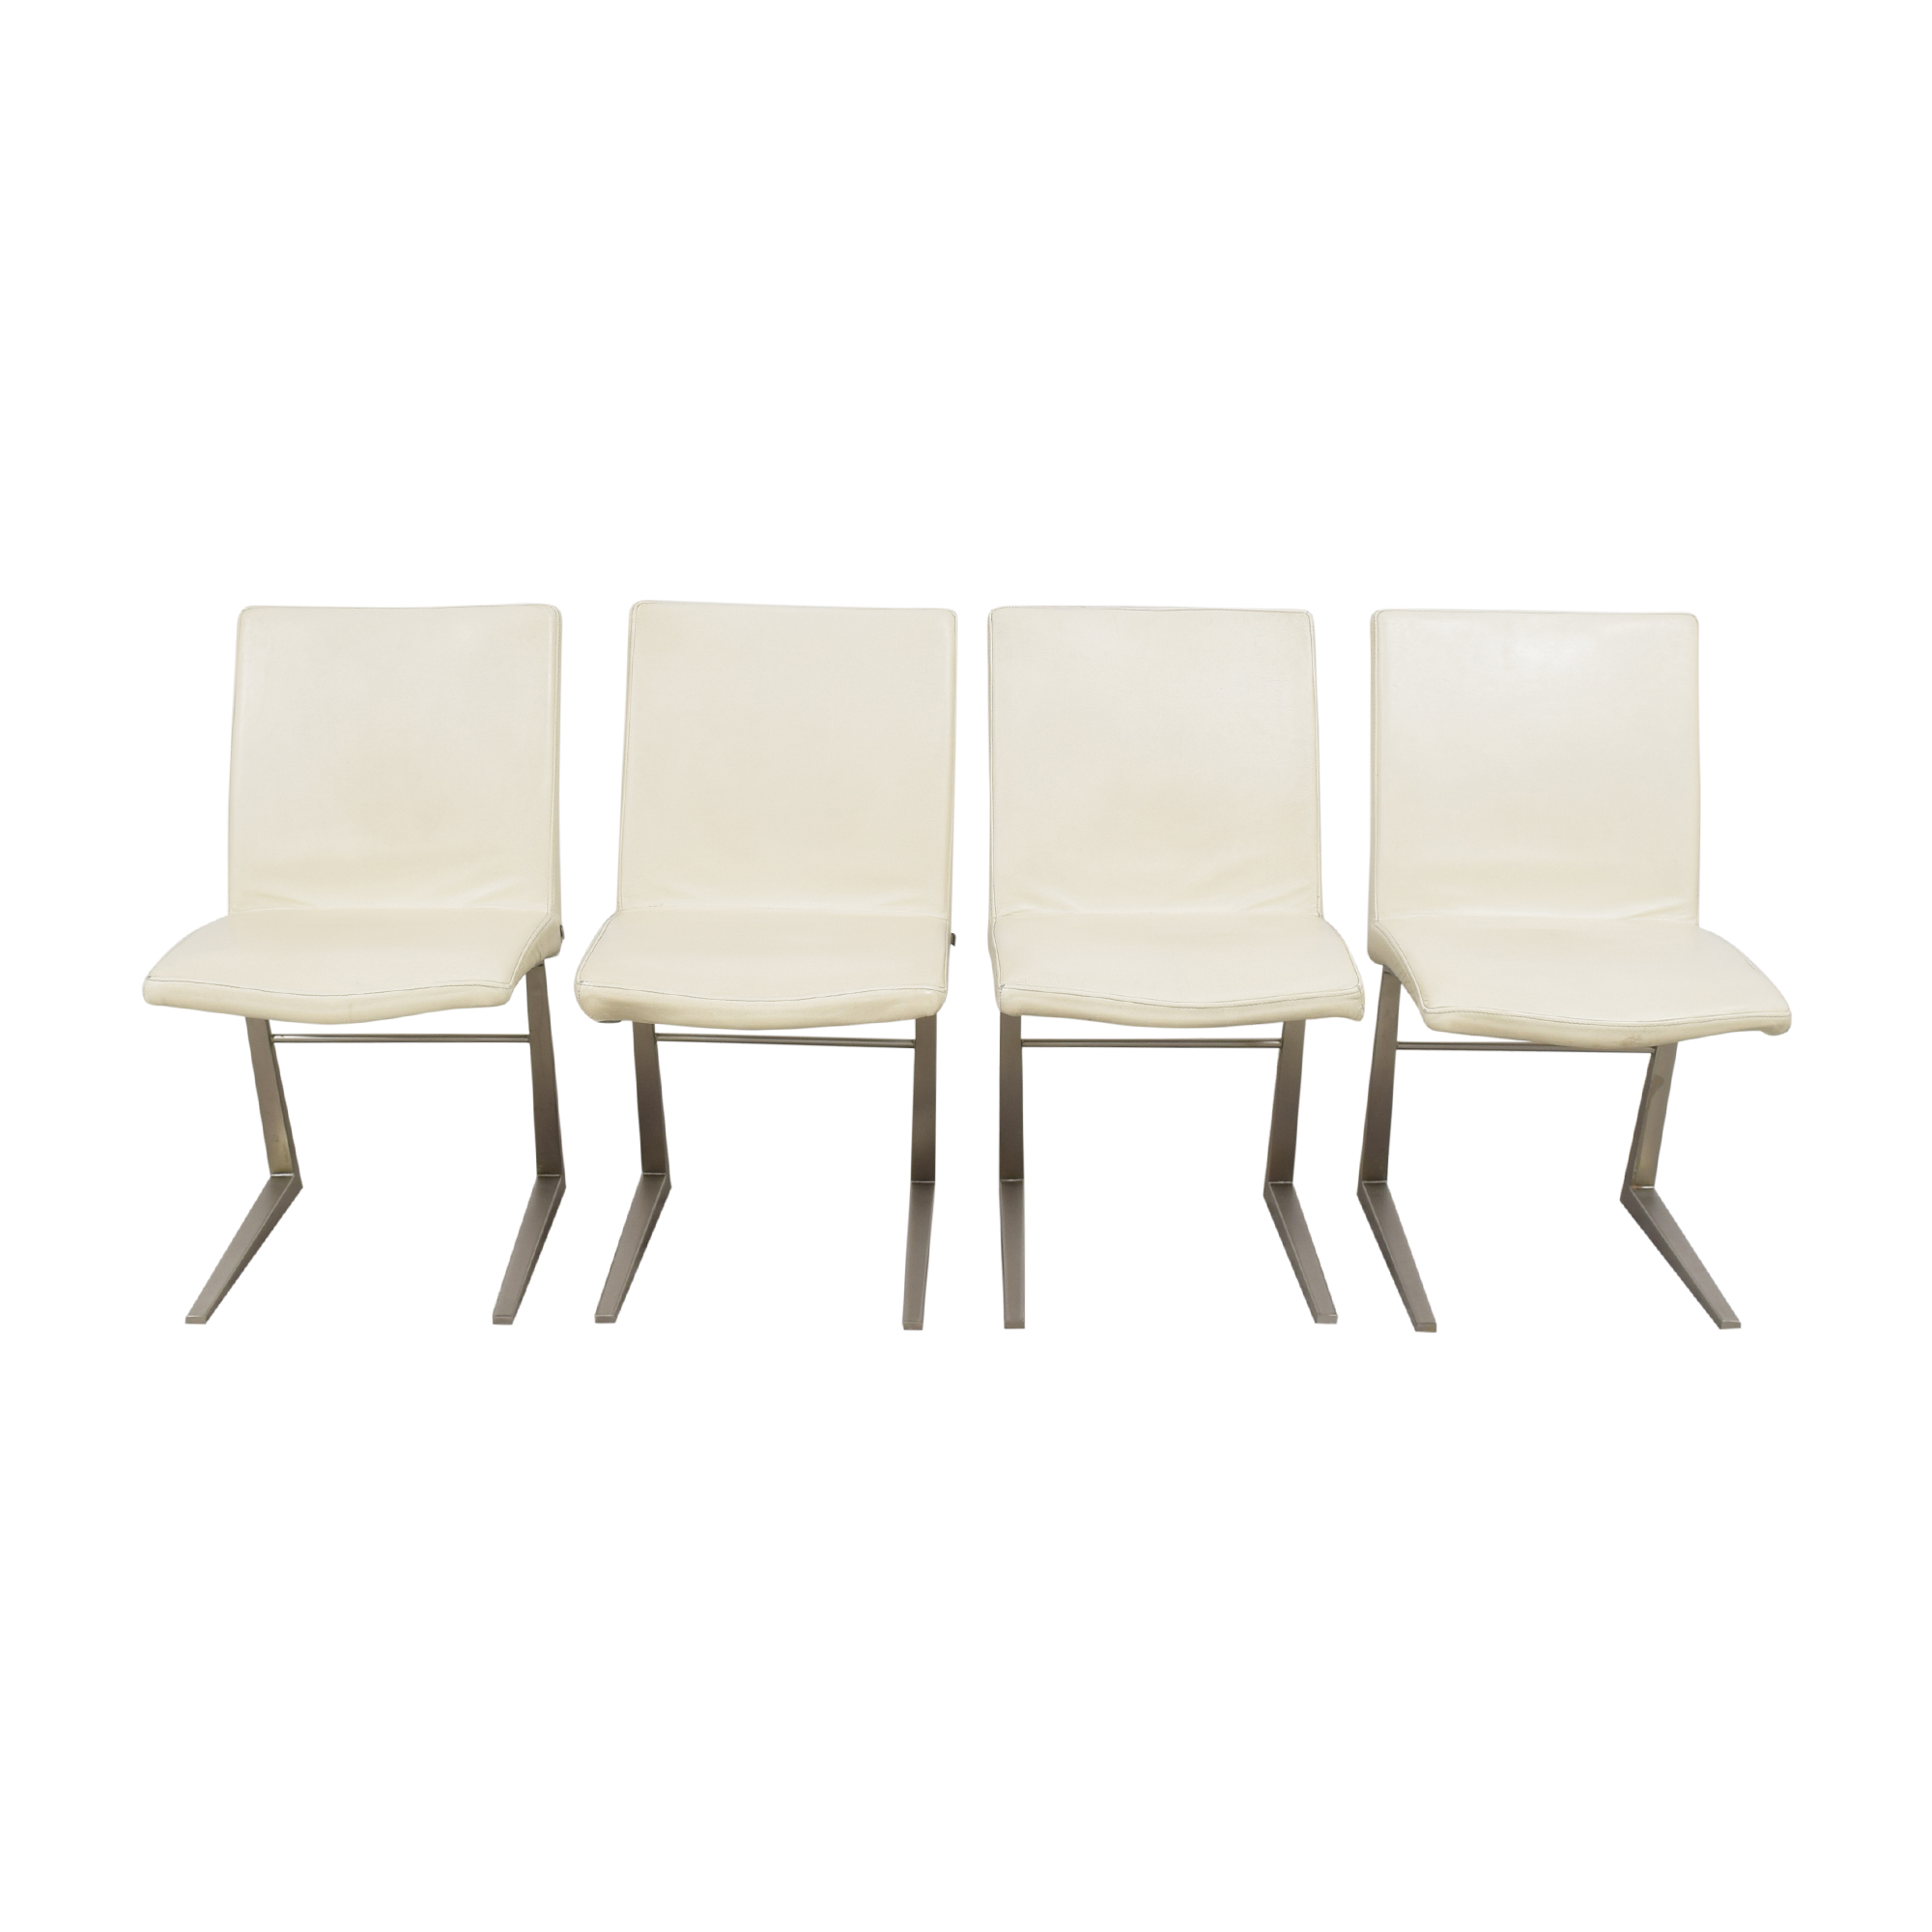 BoConcept BoConcept Mariposa Dining Chairs dimensions